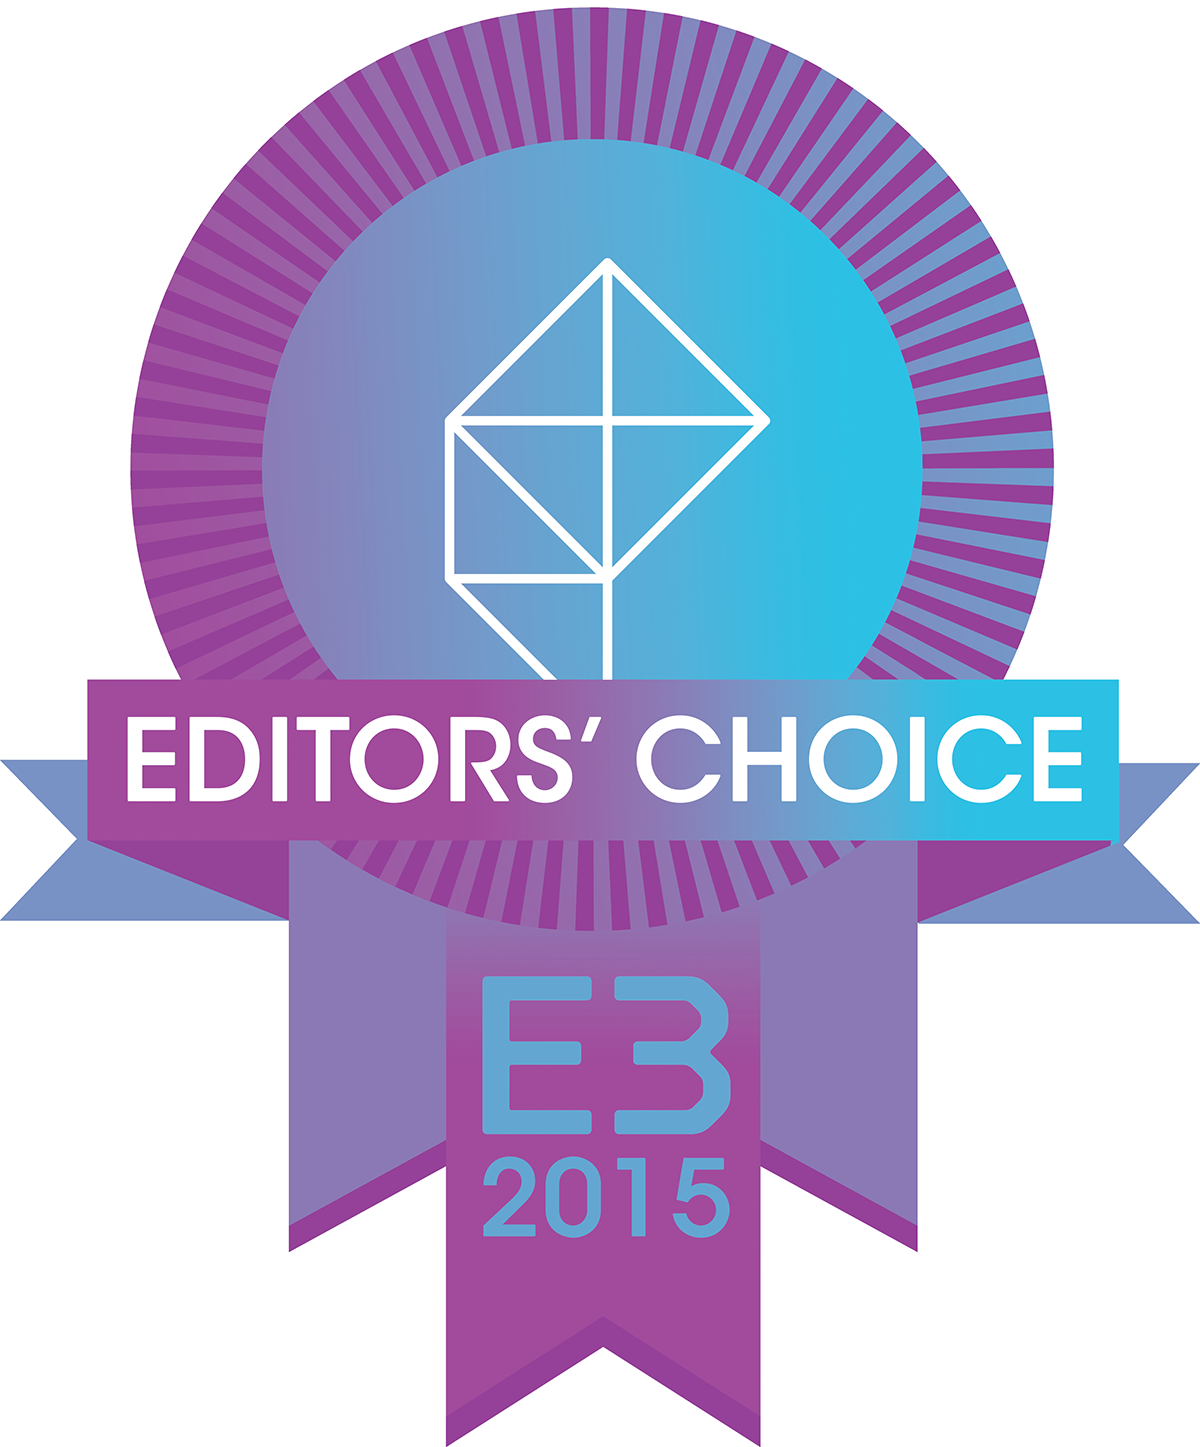 Editor's Choice - Polygon